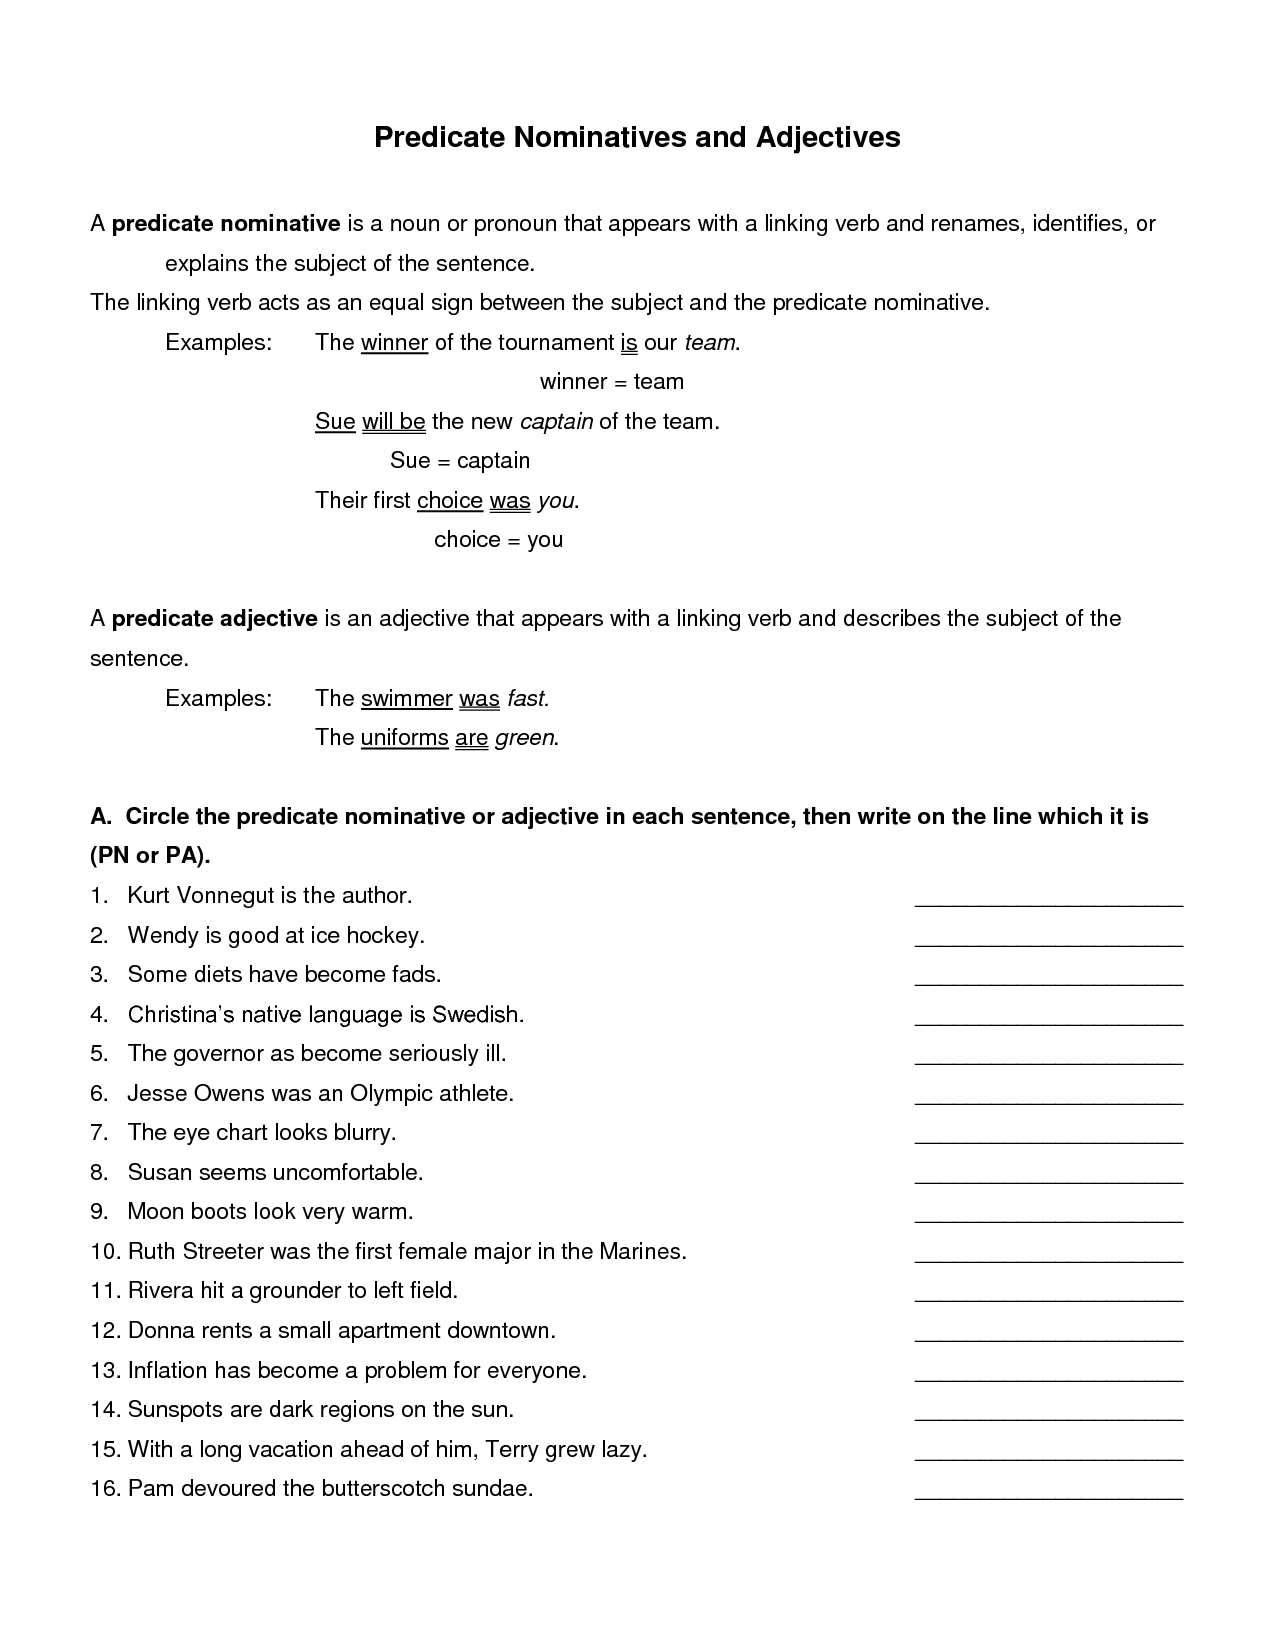 worksheet Nouns And Verbs Worksheets printables predicate nominative worksheet jigglist thousands of for 5th grade sentence worksheets math nouns and search on pinterest 5th